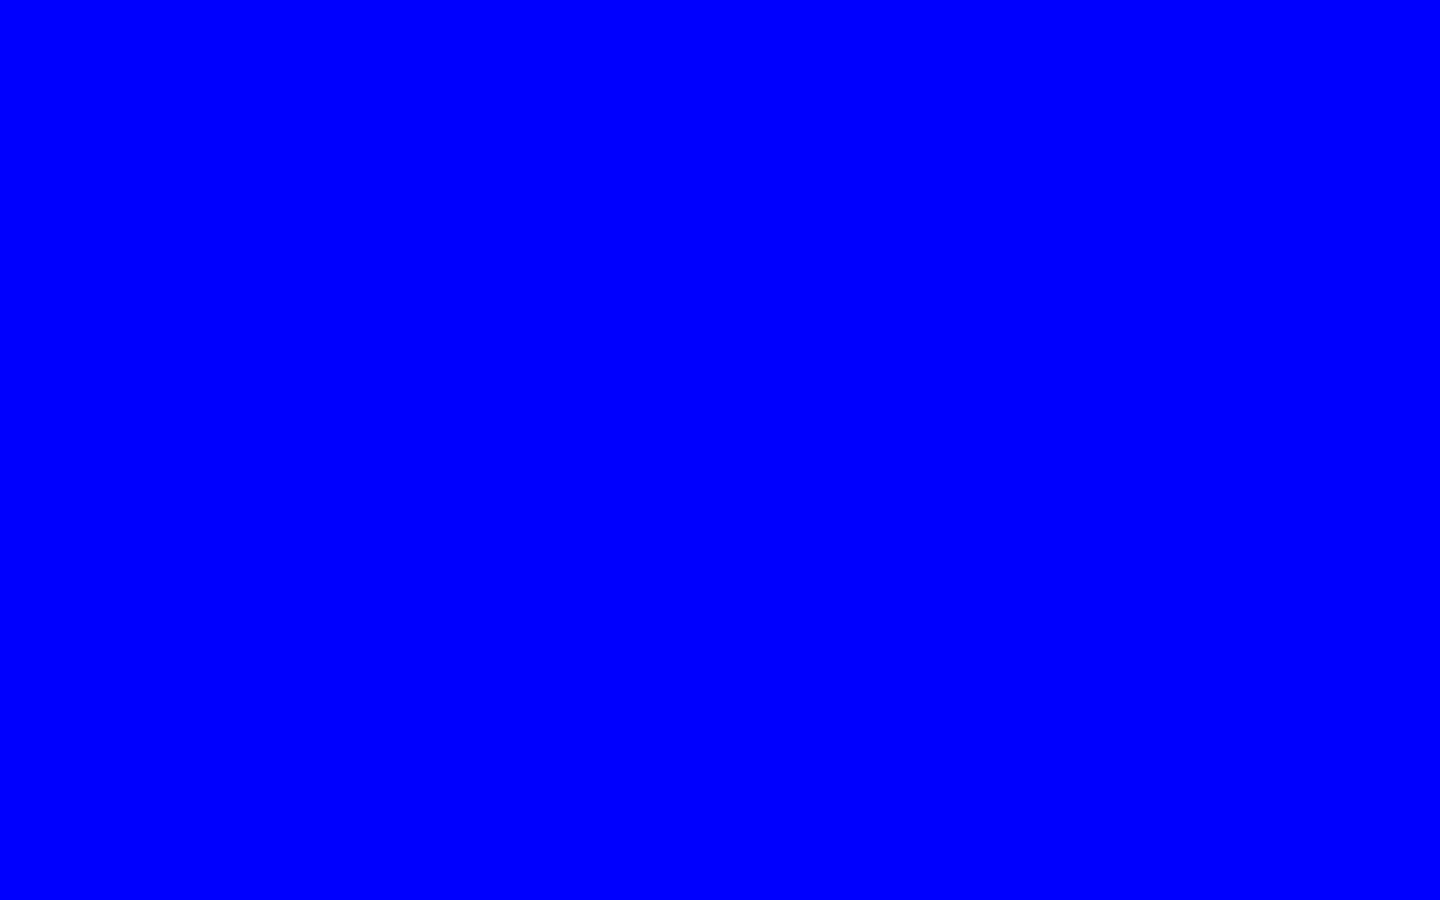 1440x900 Blue Solid Color Background